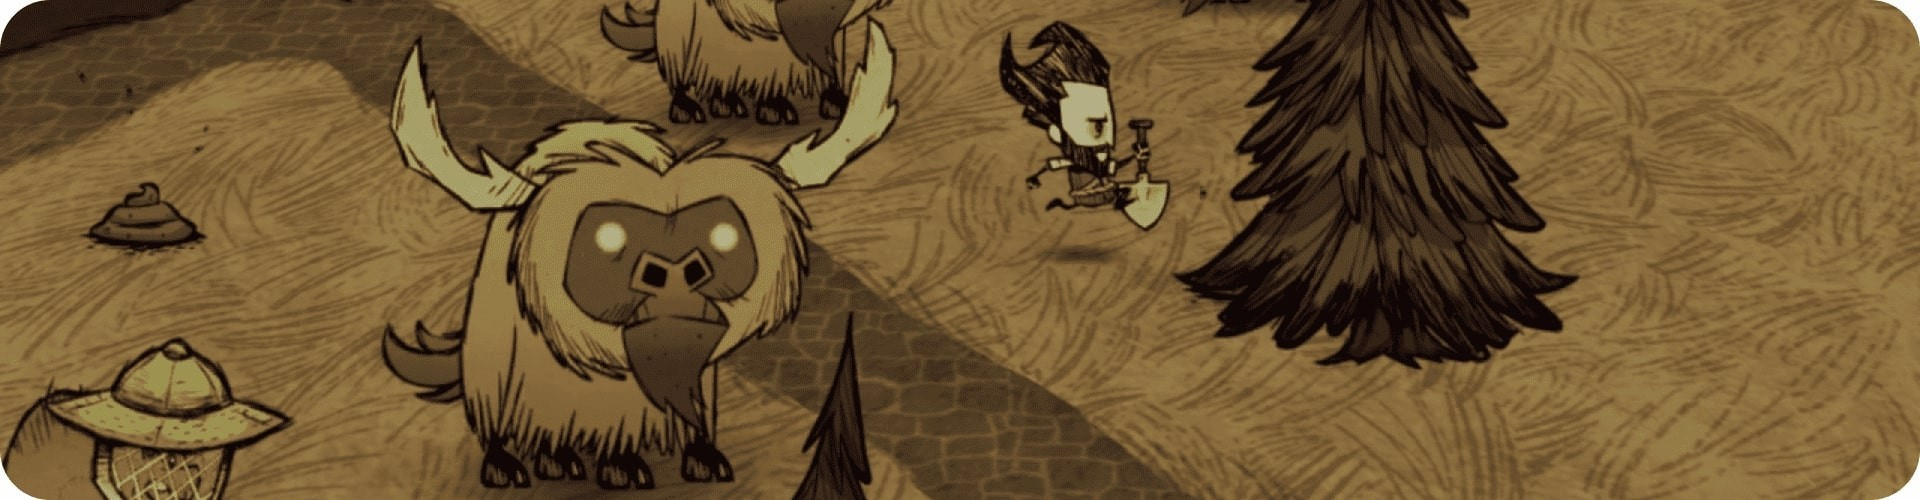 Dont Starve (Донт Старв)